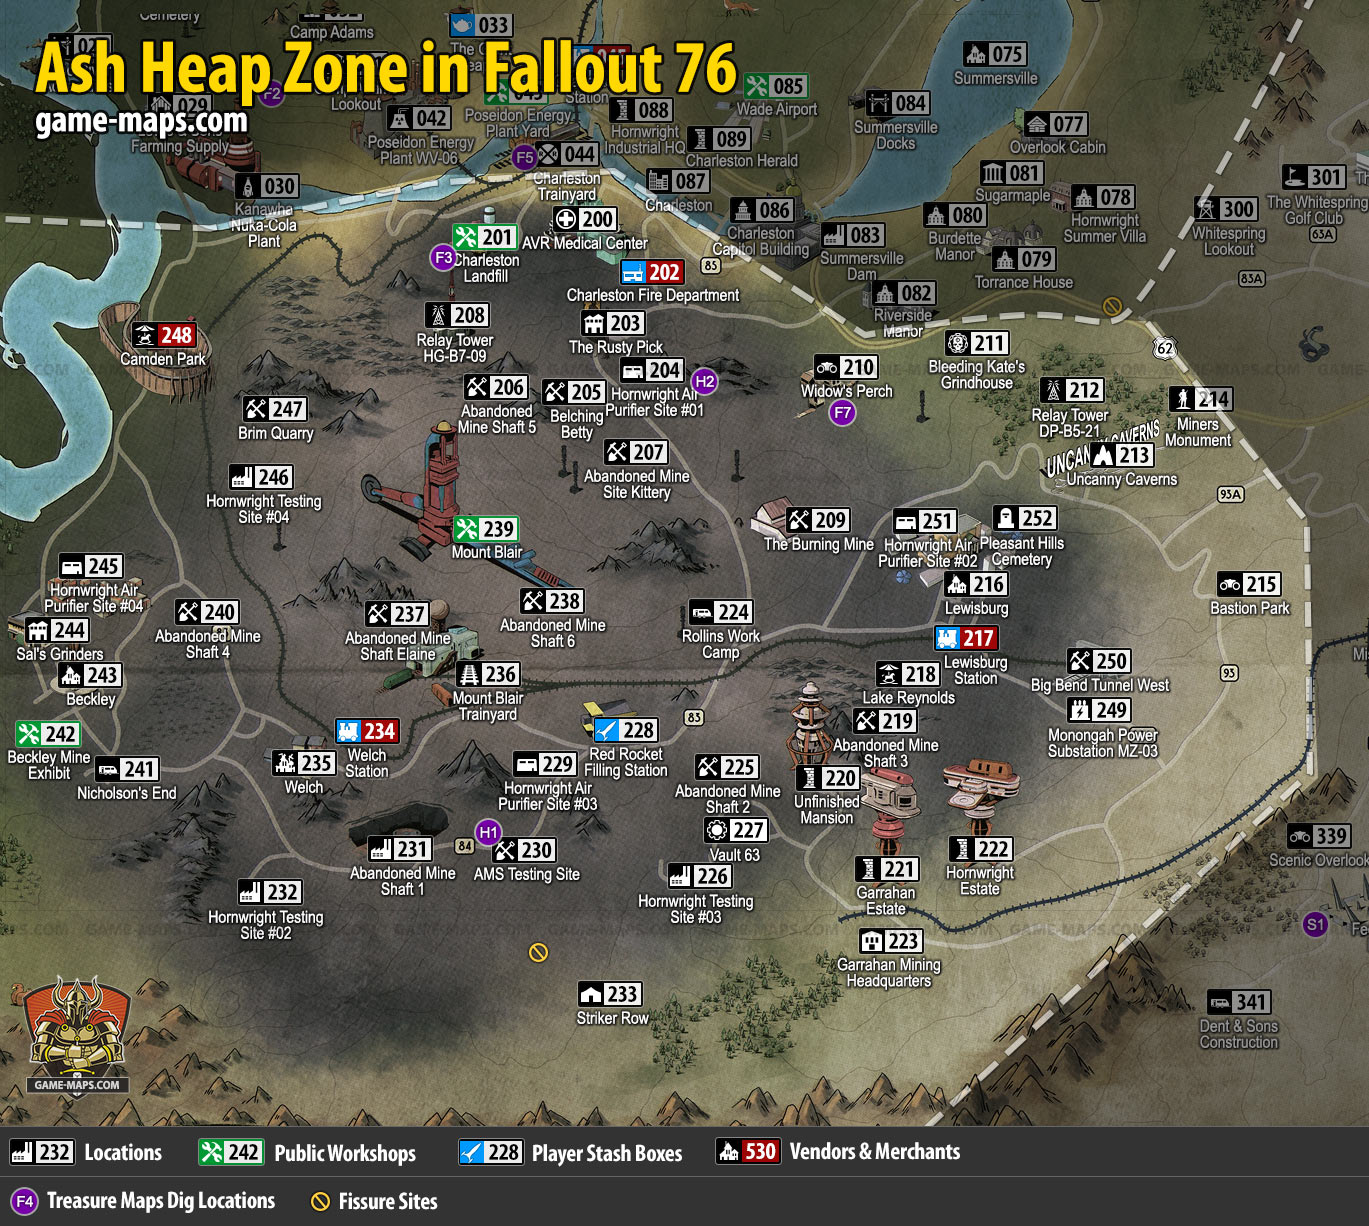 Ash Heap Map for Fallout 76 | game-maps com